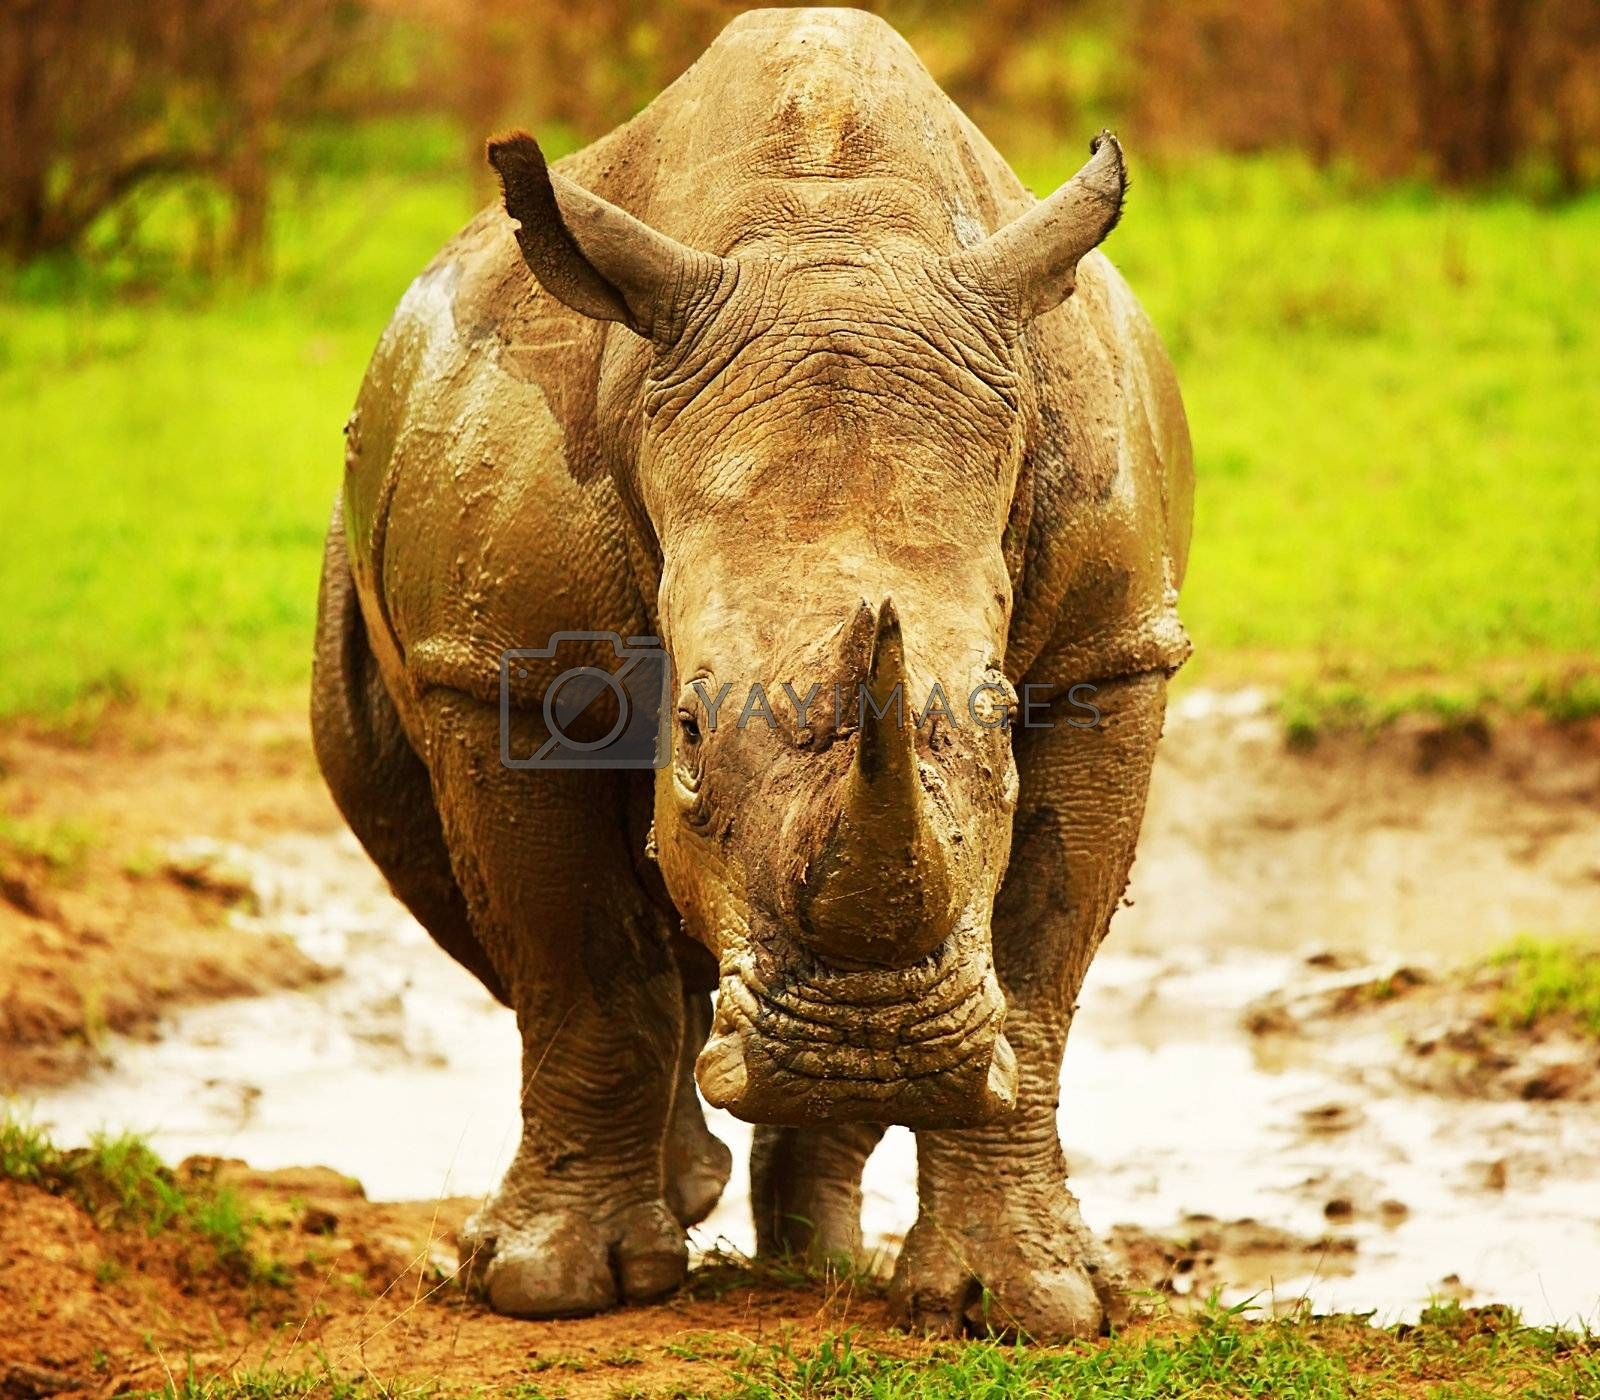 Huge South African rhino after mud bath at Kruger safari park, nature and wildlife of Africa, endangered animal at its natural habitat, eco tourism and travel